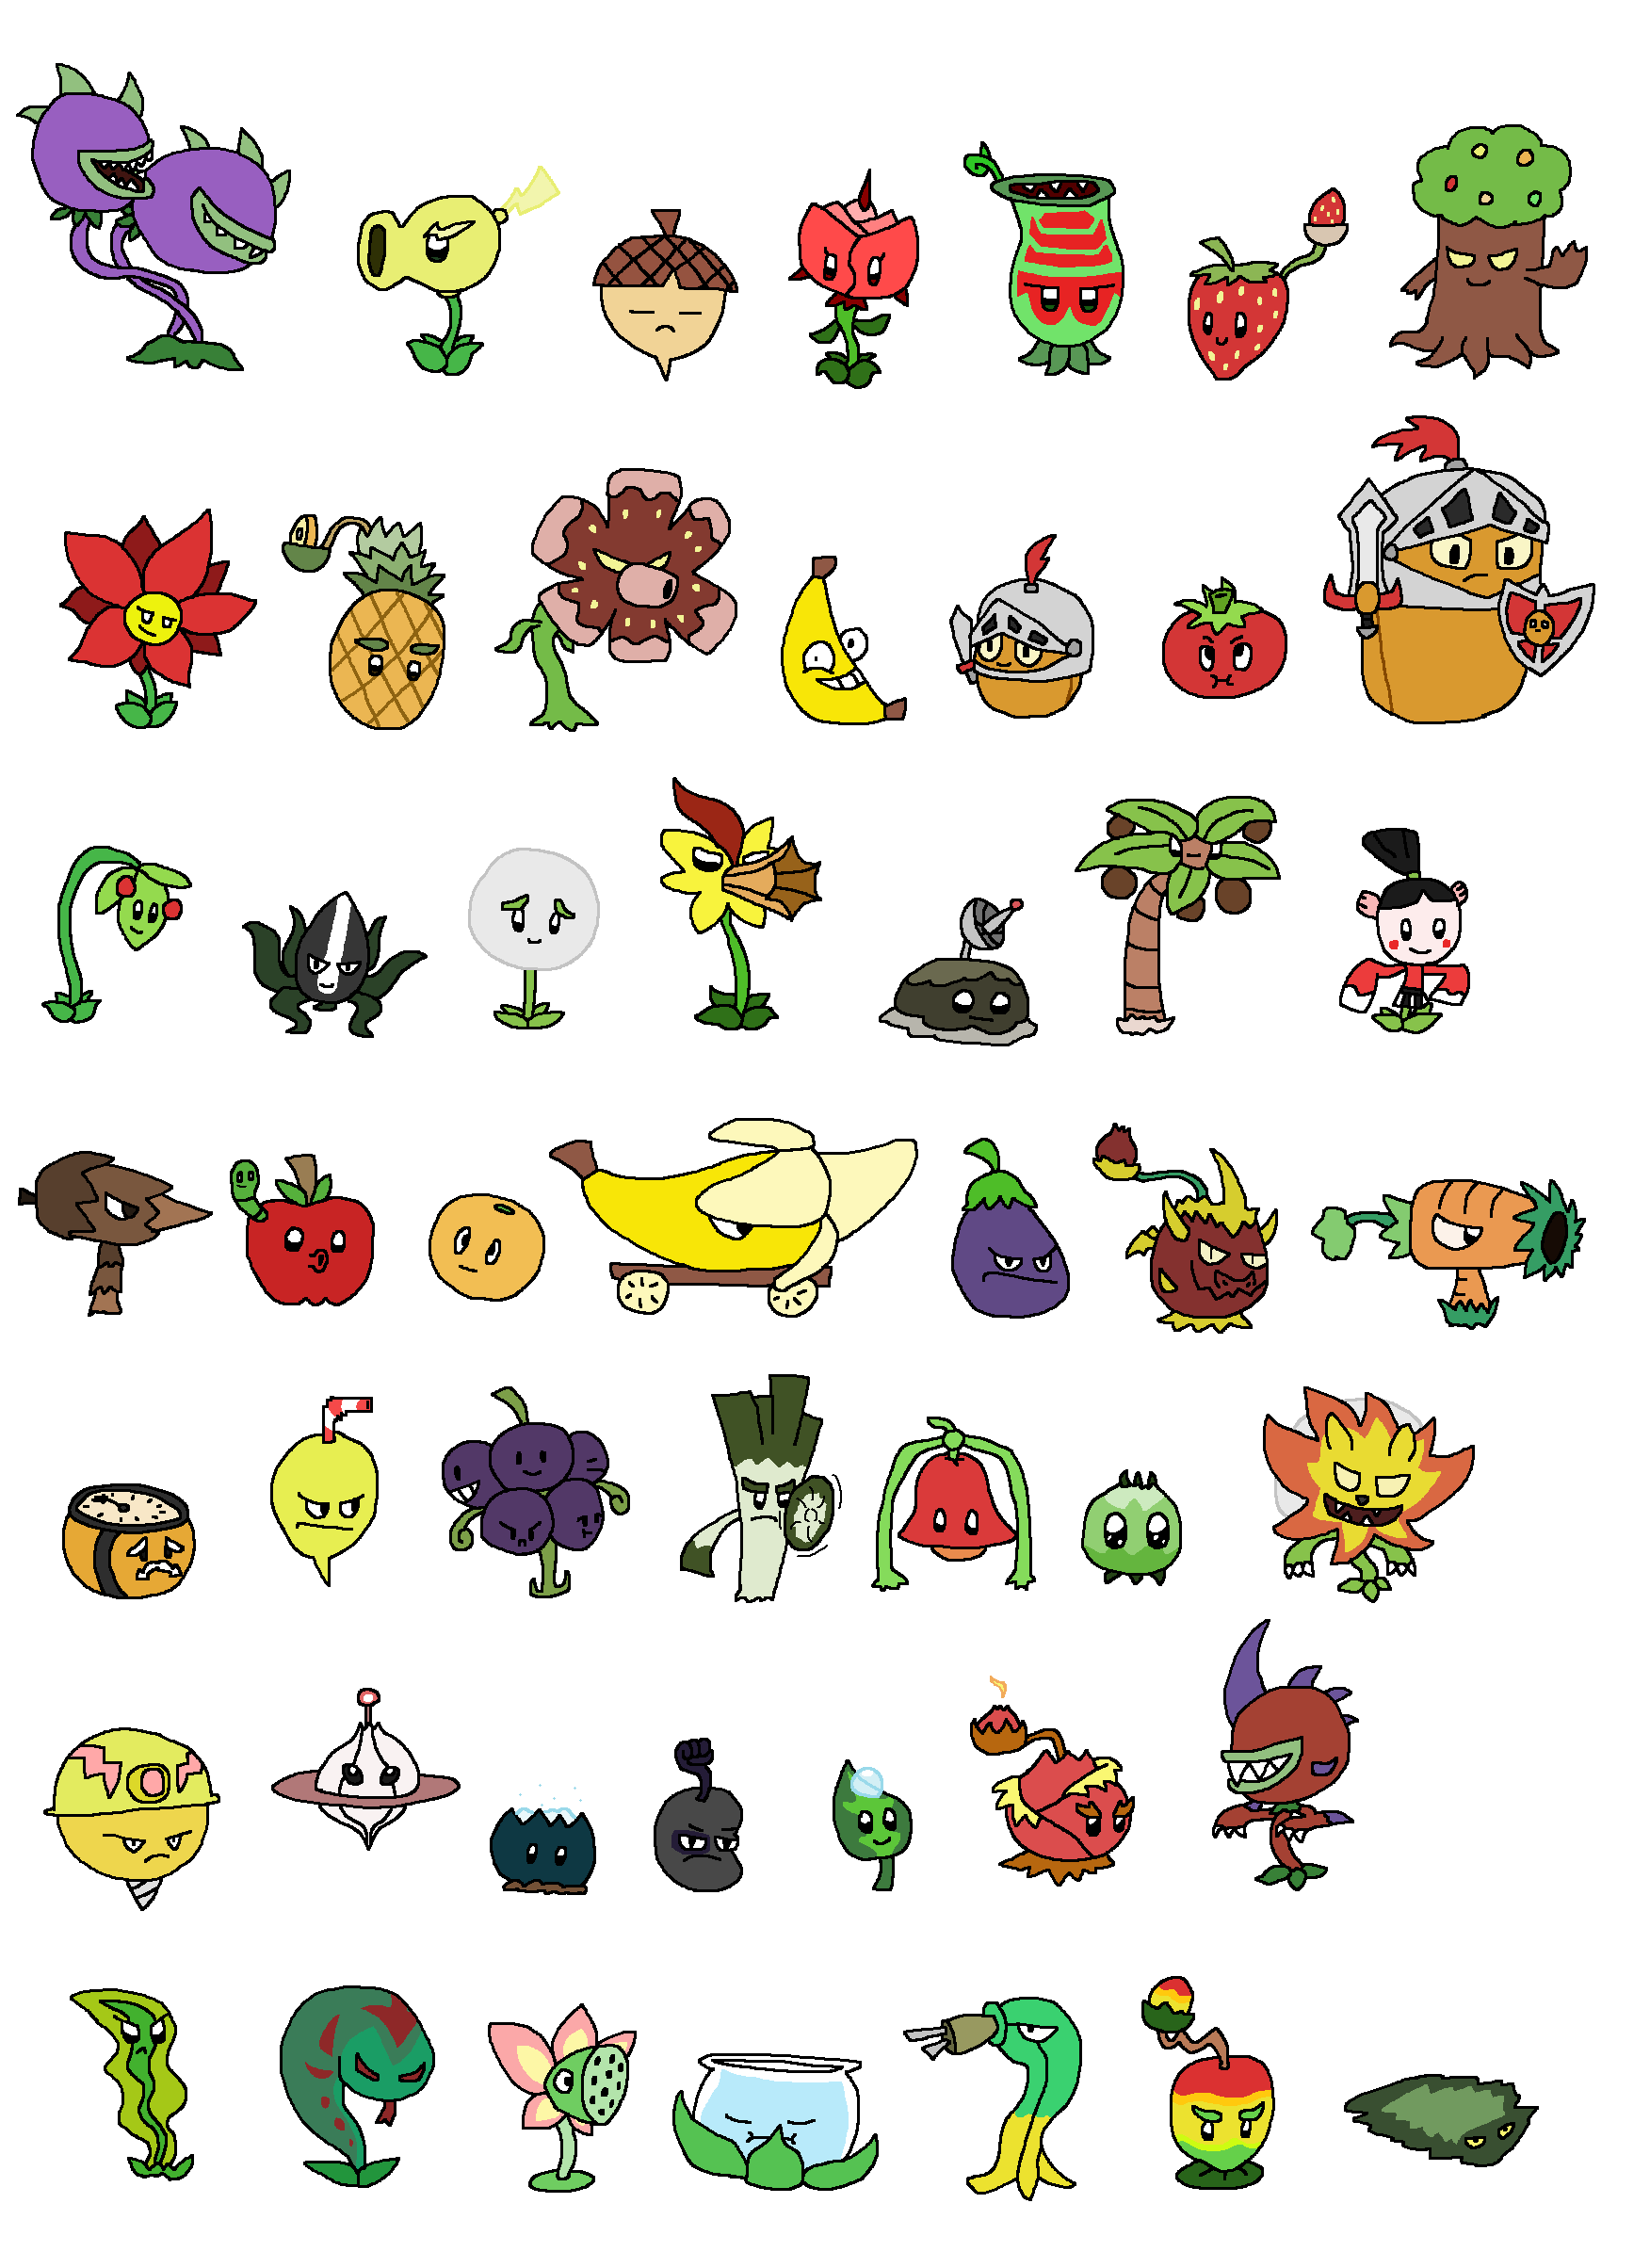 Plants vs zombies 3 by joltiklover on deviantart for Plante vs zombie